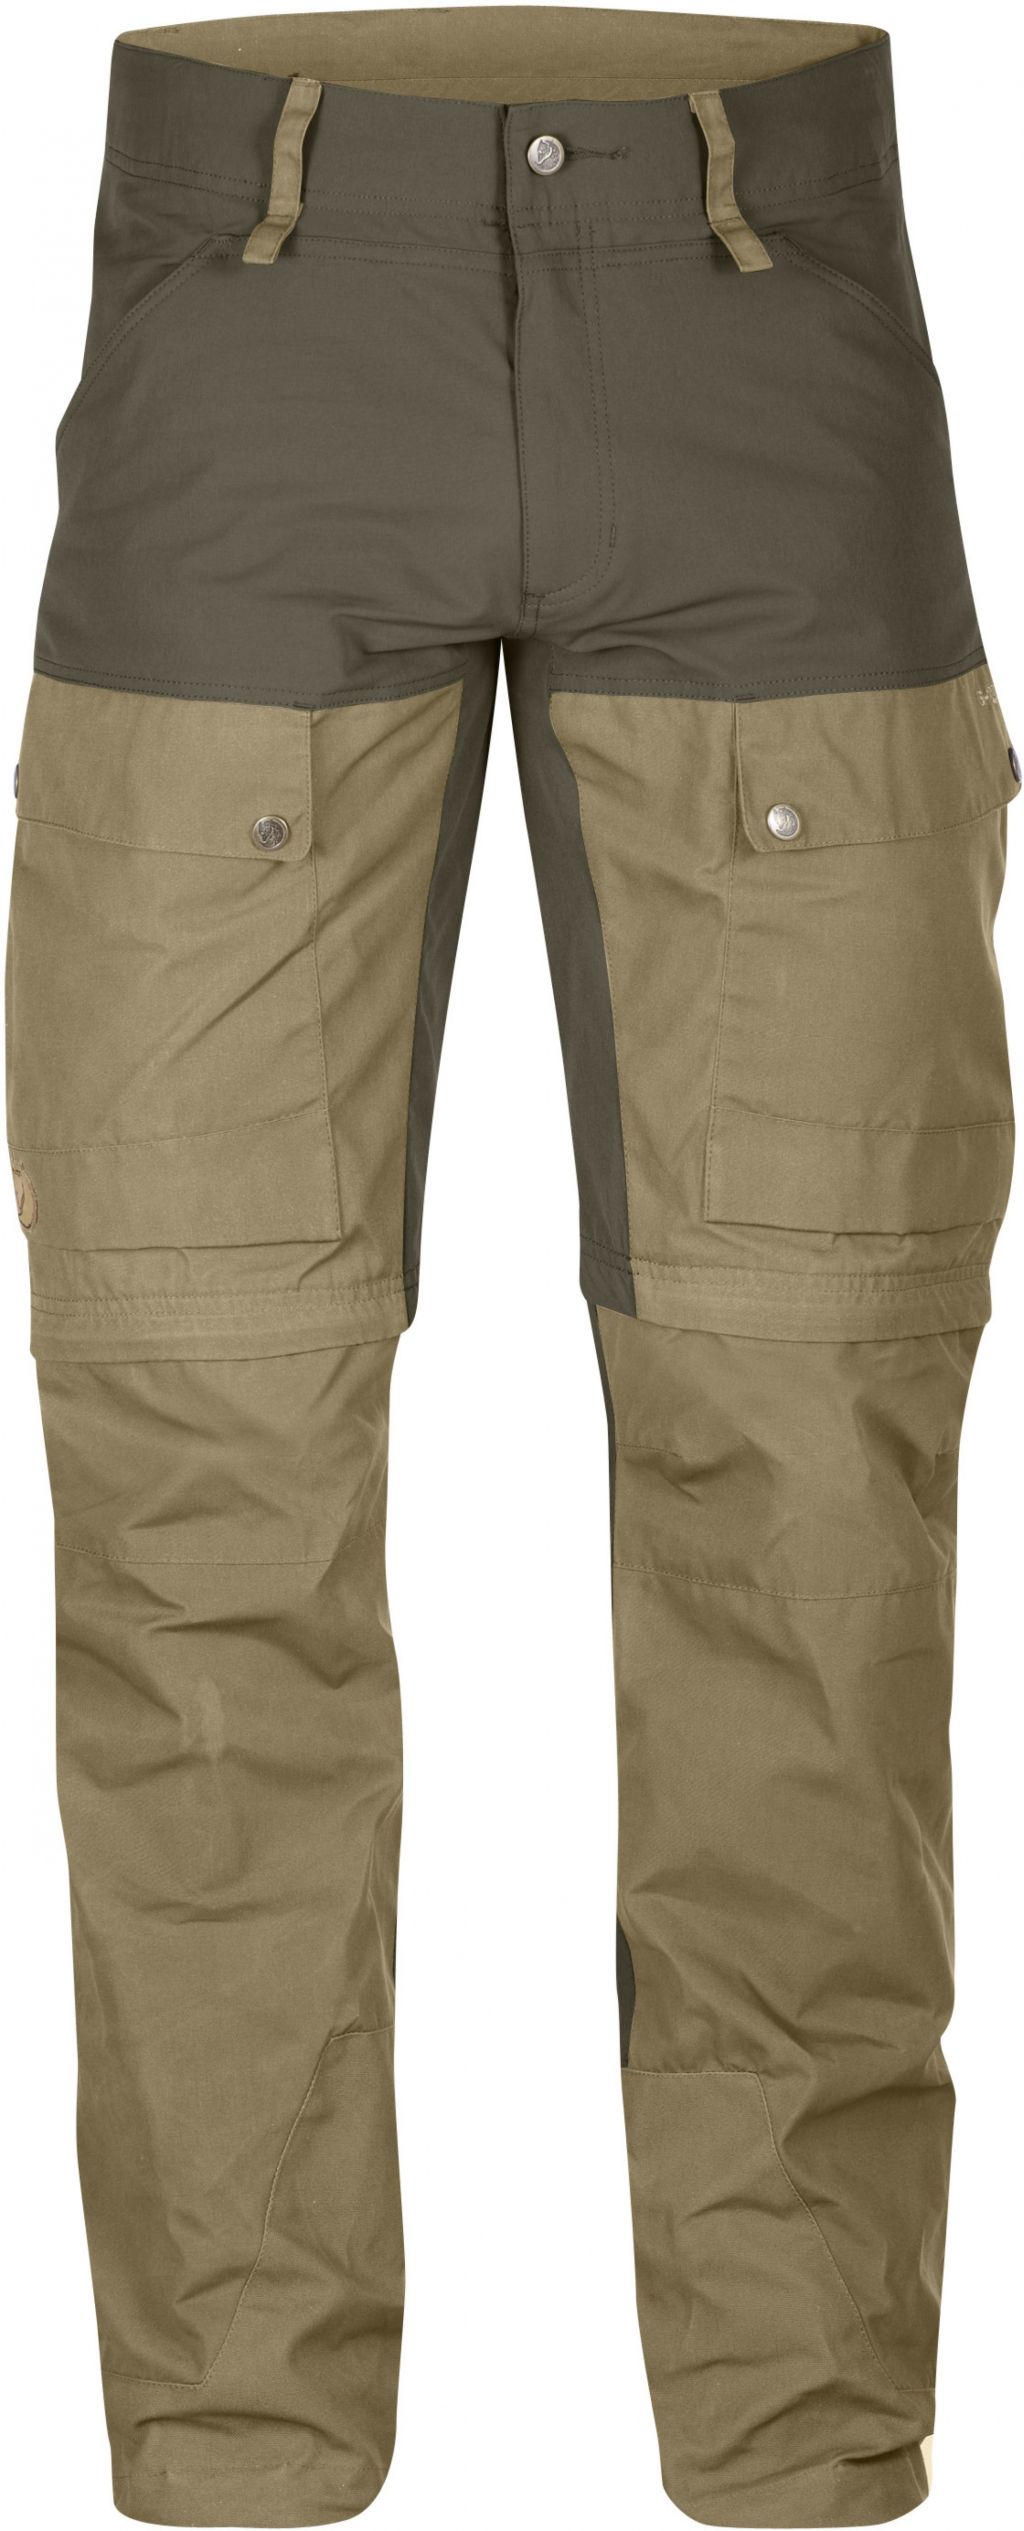 FjallRaven Keb Gaiter Trousers Regular Sand-30